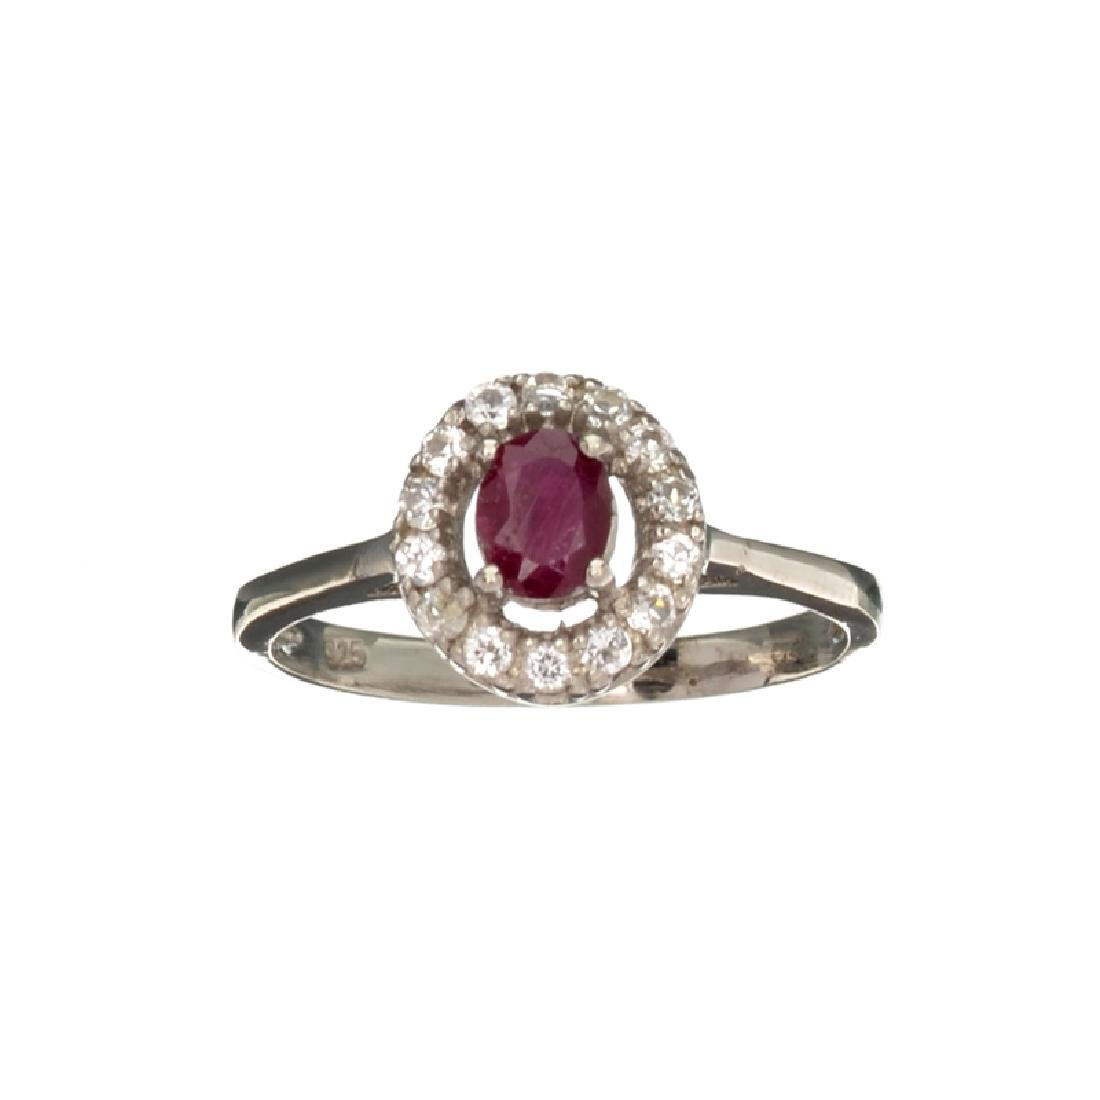 APP: 0.5k Fine Jewelry 0.81CT Oval Cut Ruby And White